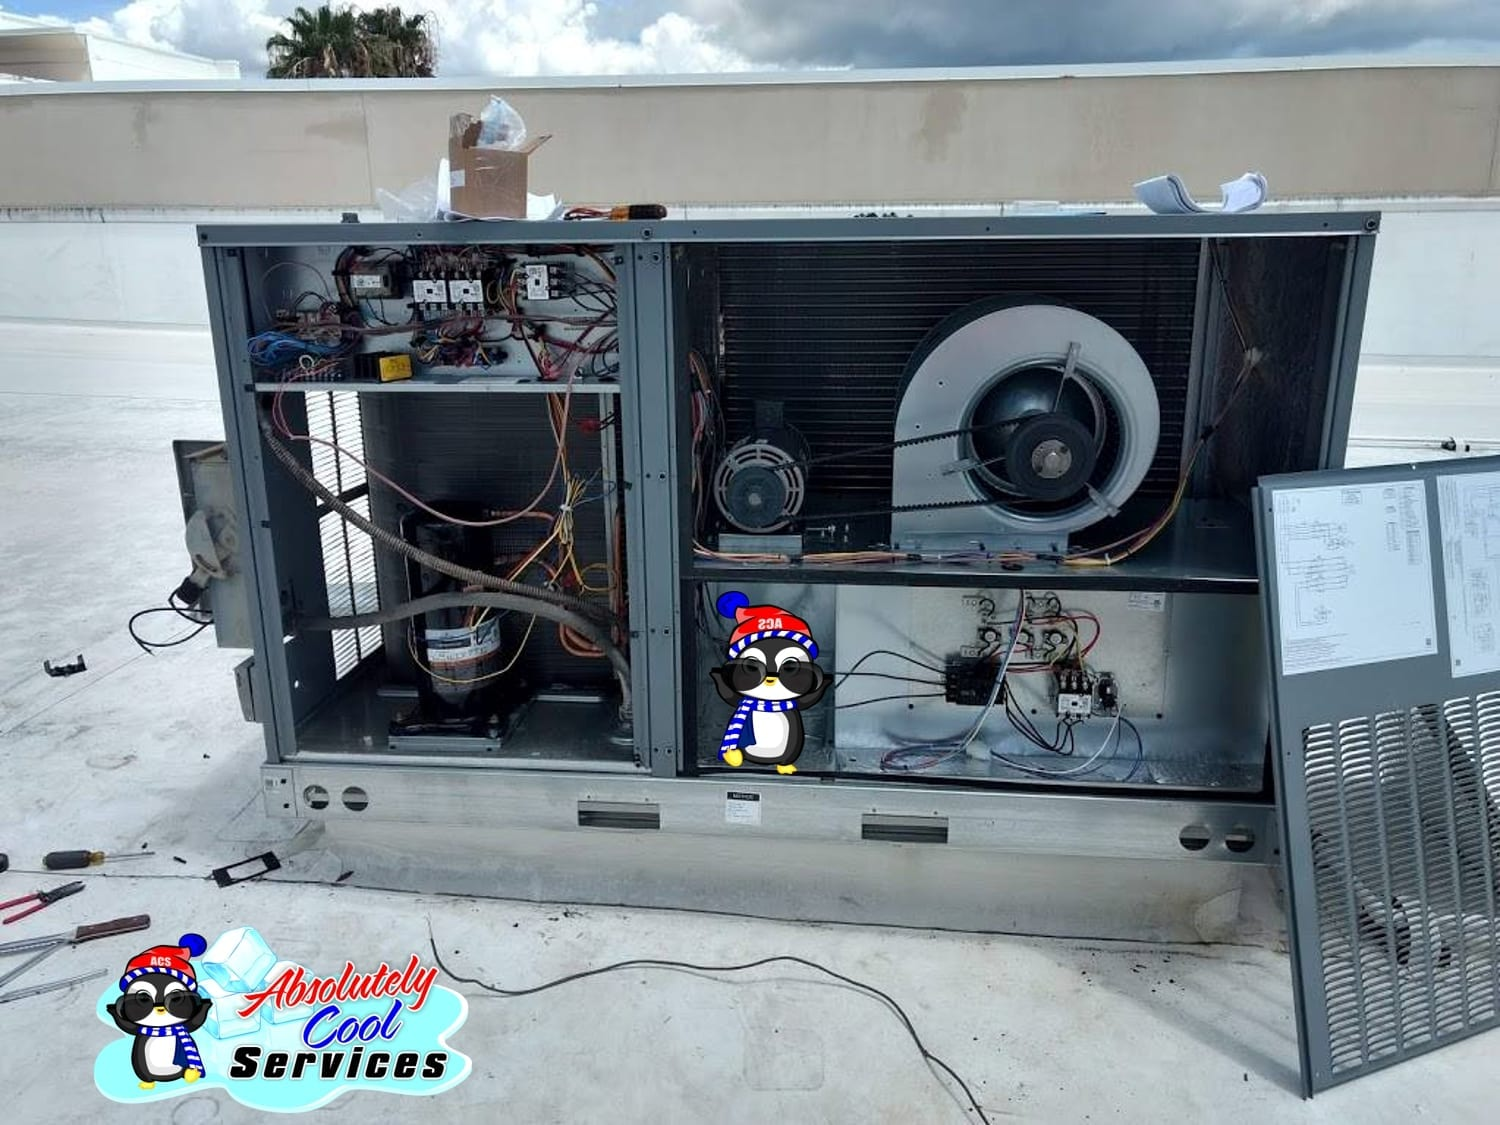 Roof Air Conditioning | Air Conditioning Diagnosis Company near Boynton Beach